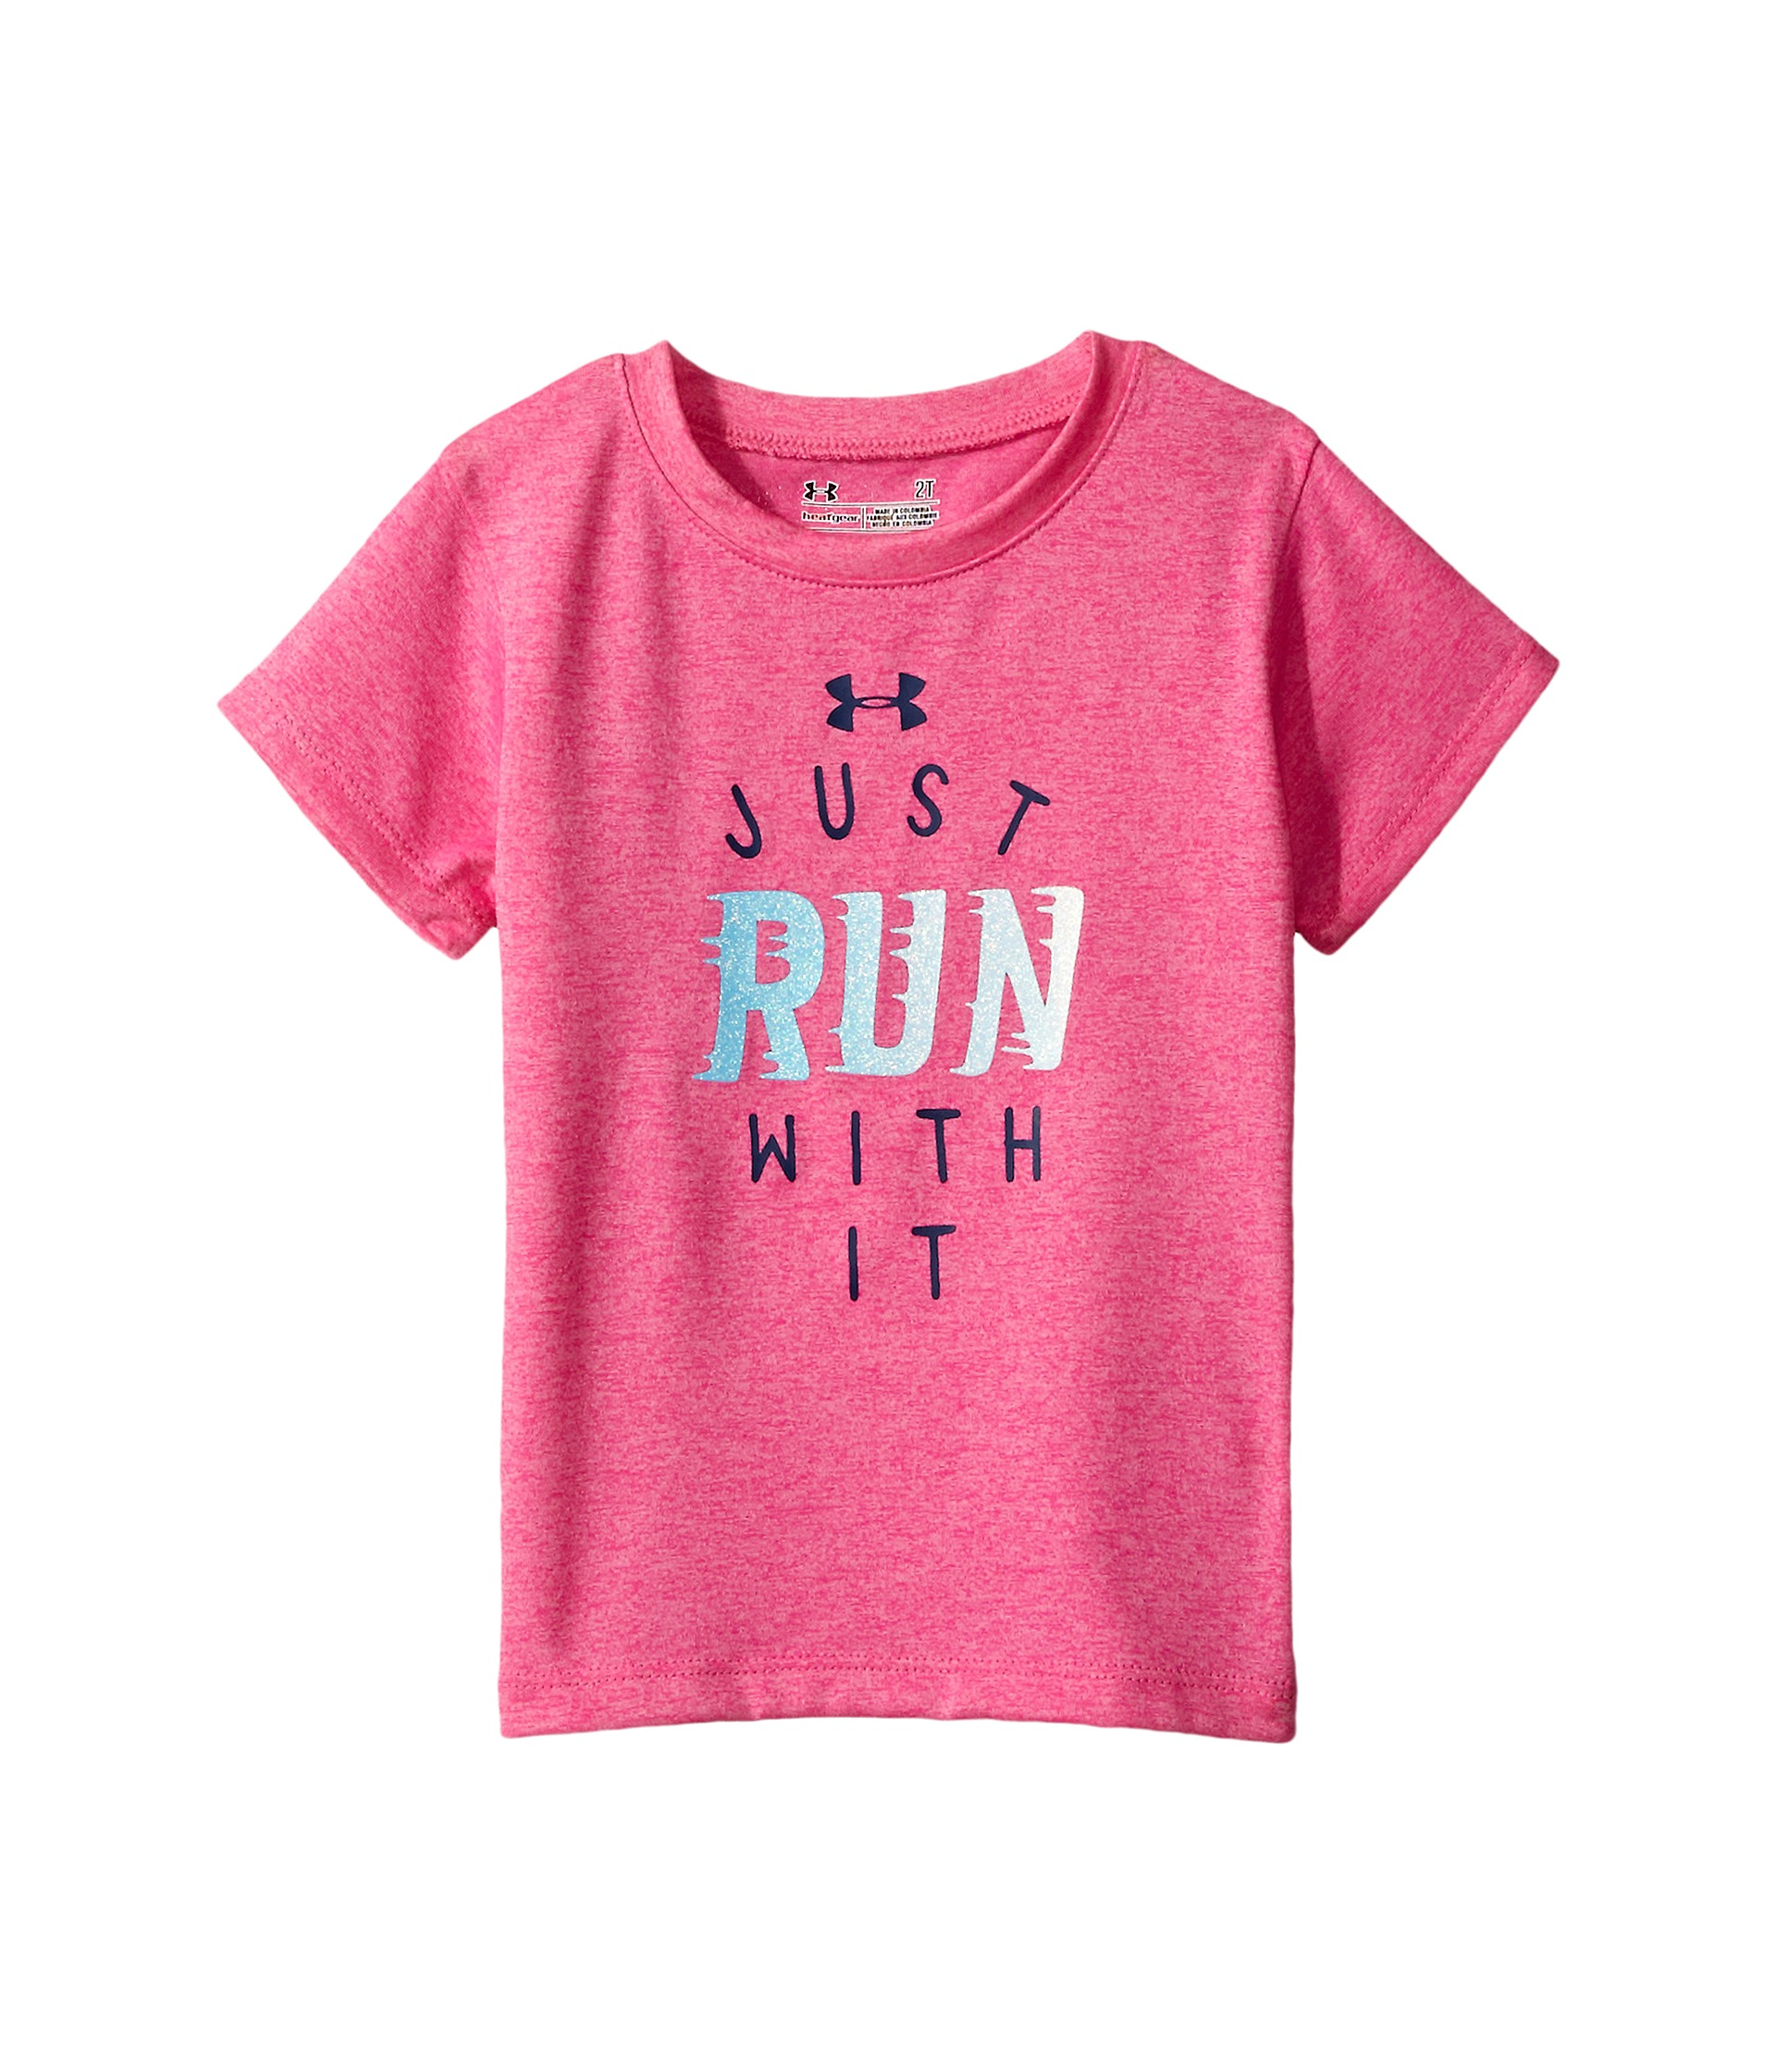 Under Armour Kids Just Run With It Shirt Toddler At